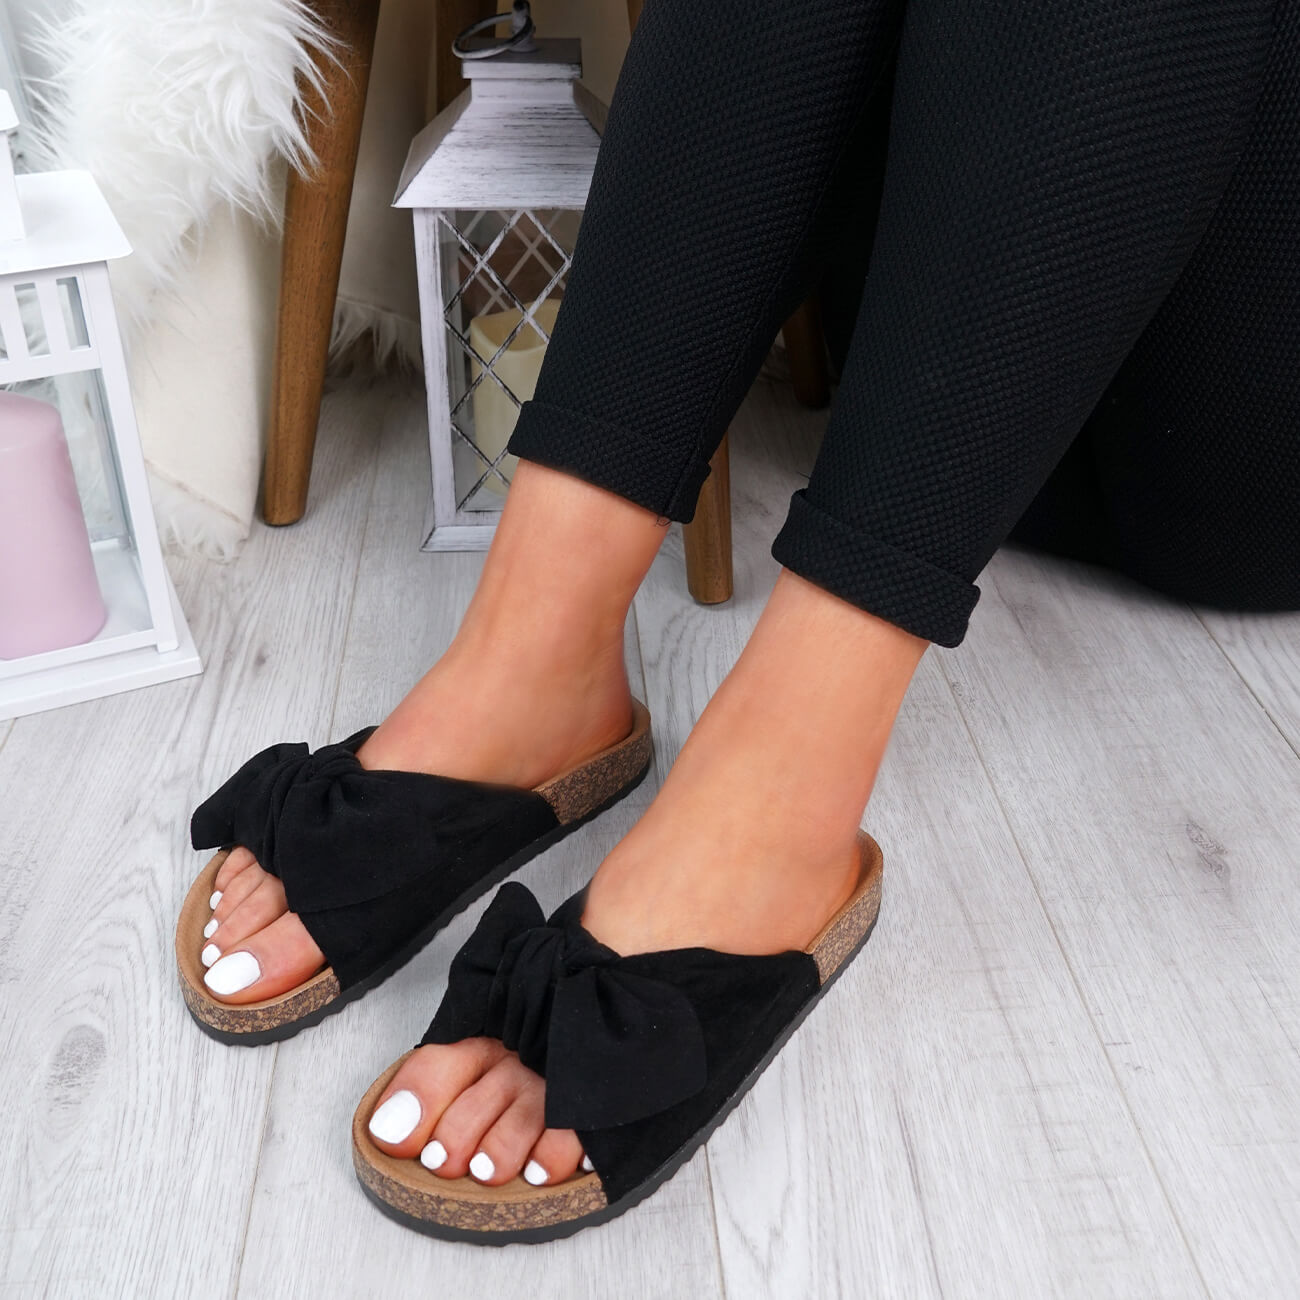 WOMENS-LADIES-SLIP-ON-FLAT-SANDALS-BOW-SLIDERS-SUMMER-CASUAL-SHOES-SIZE thumbnail 14